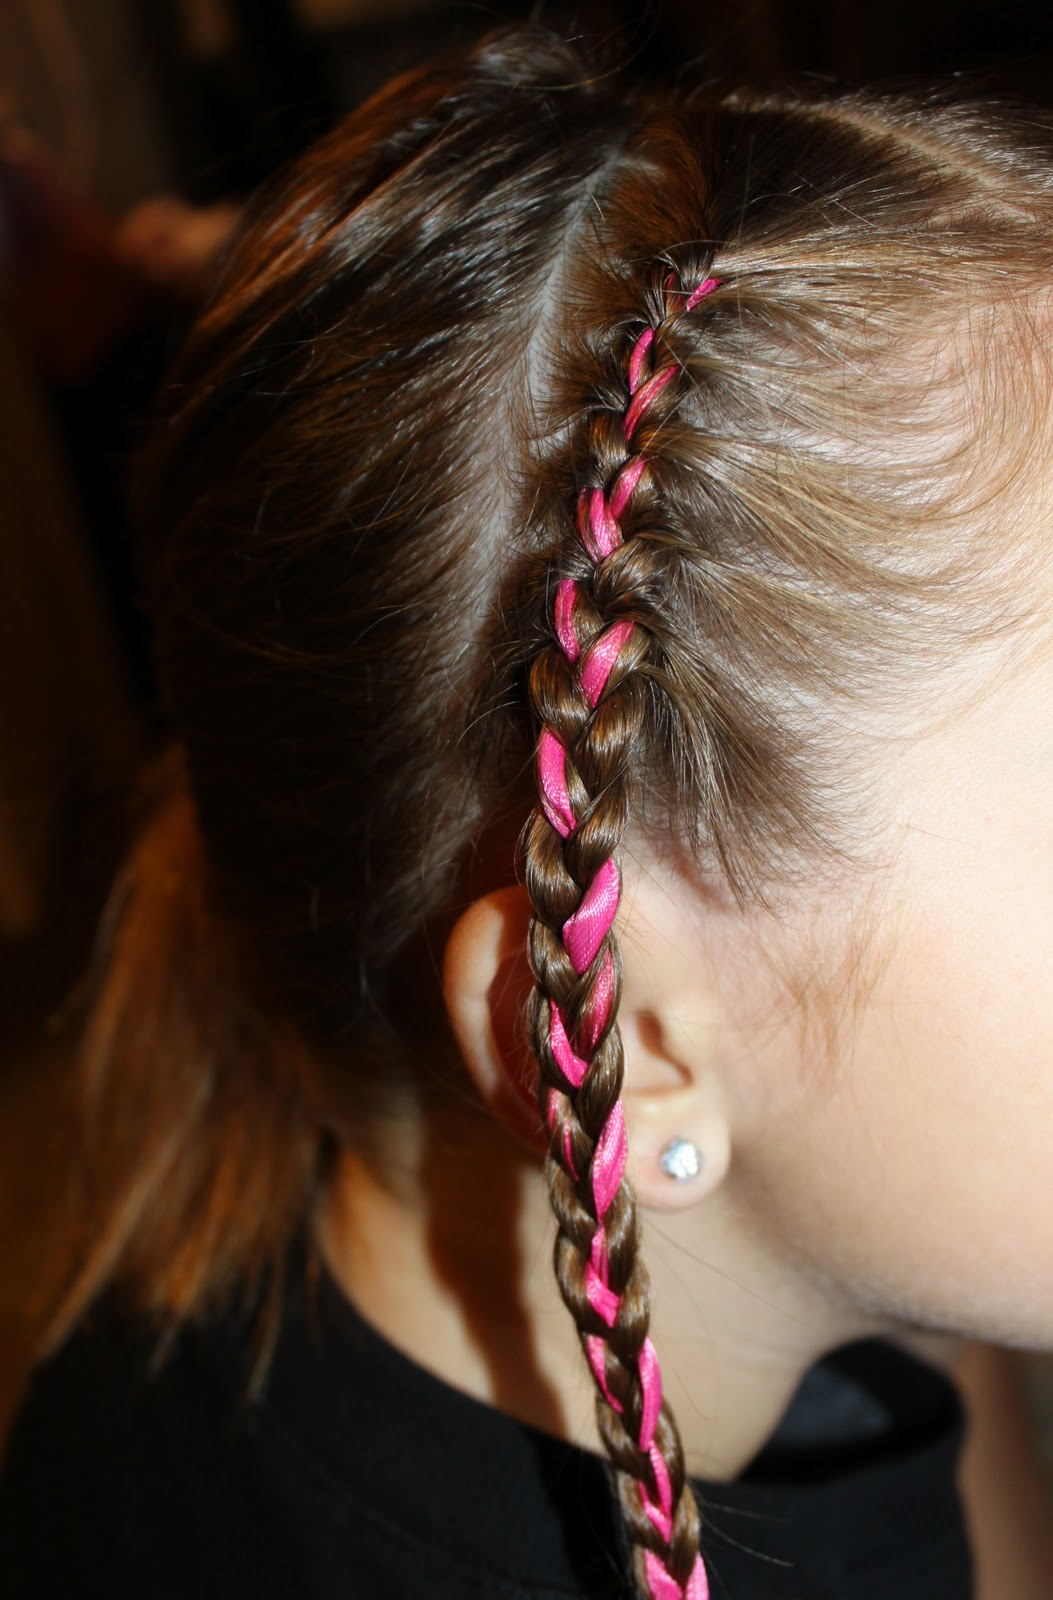 Ribbon Braids Headband - Hairstyles Ideas